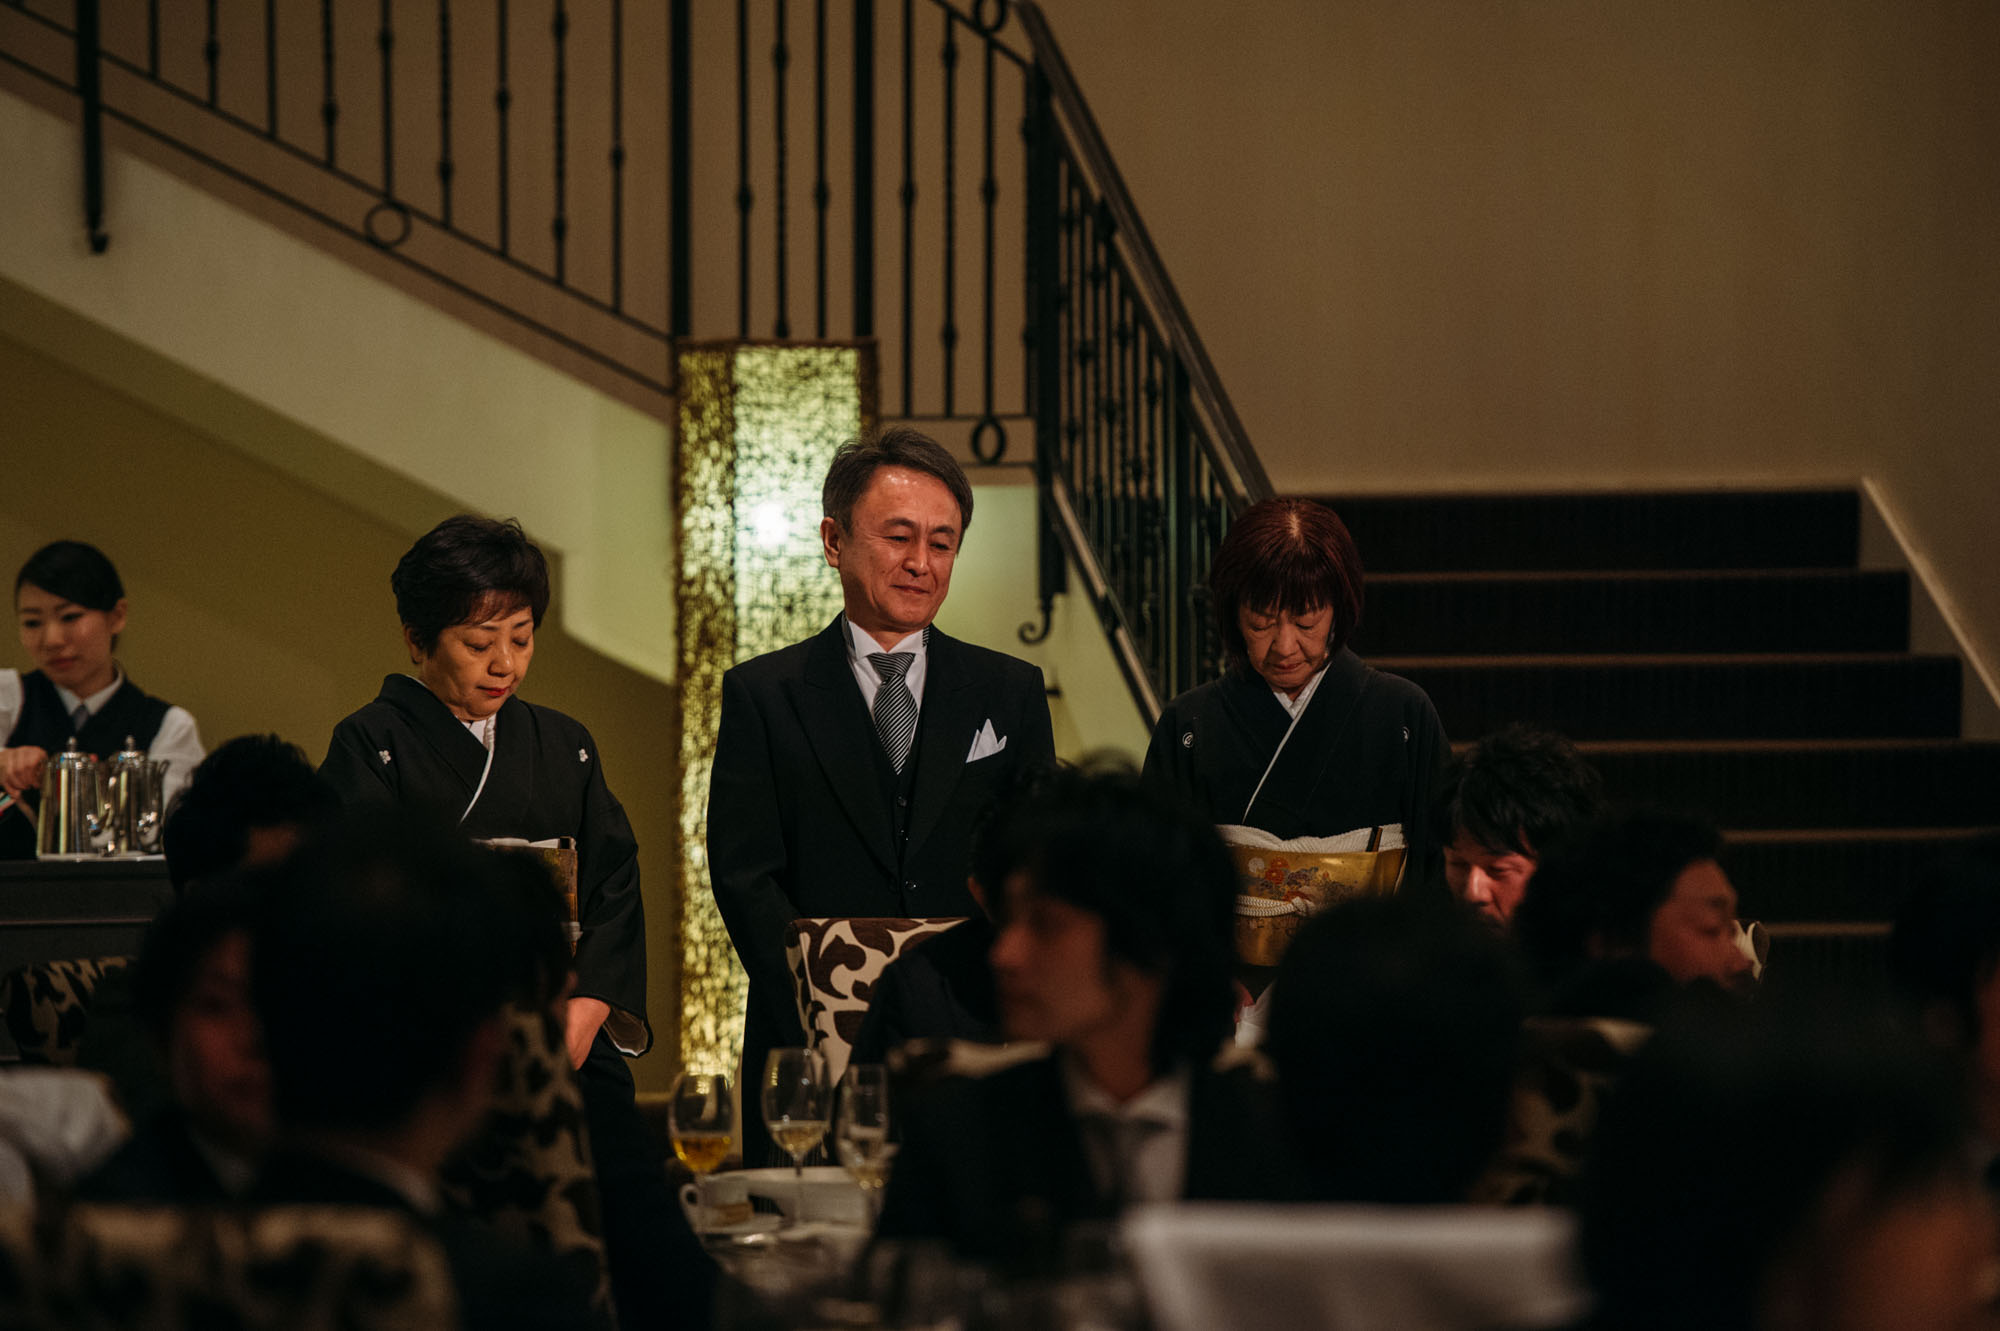 nagoya wedding149